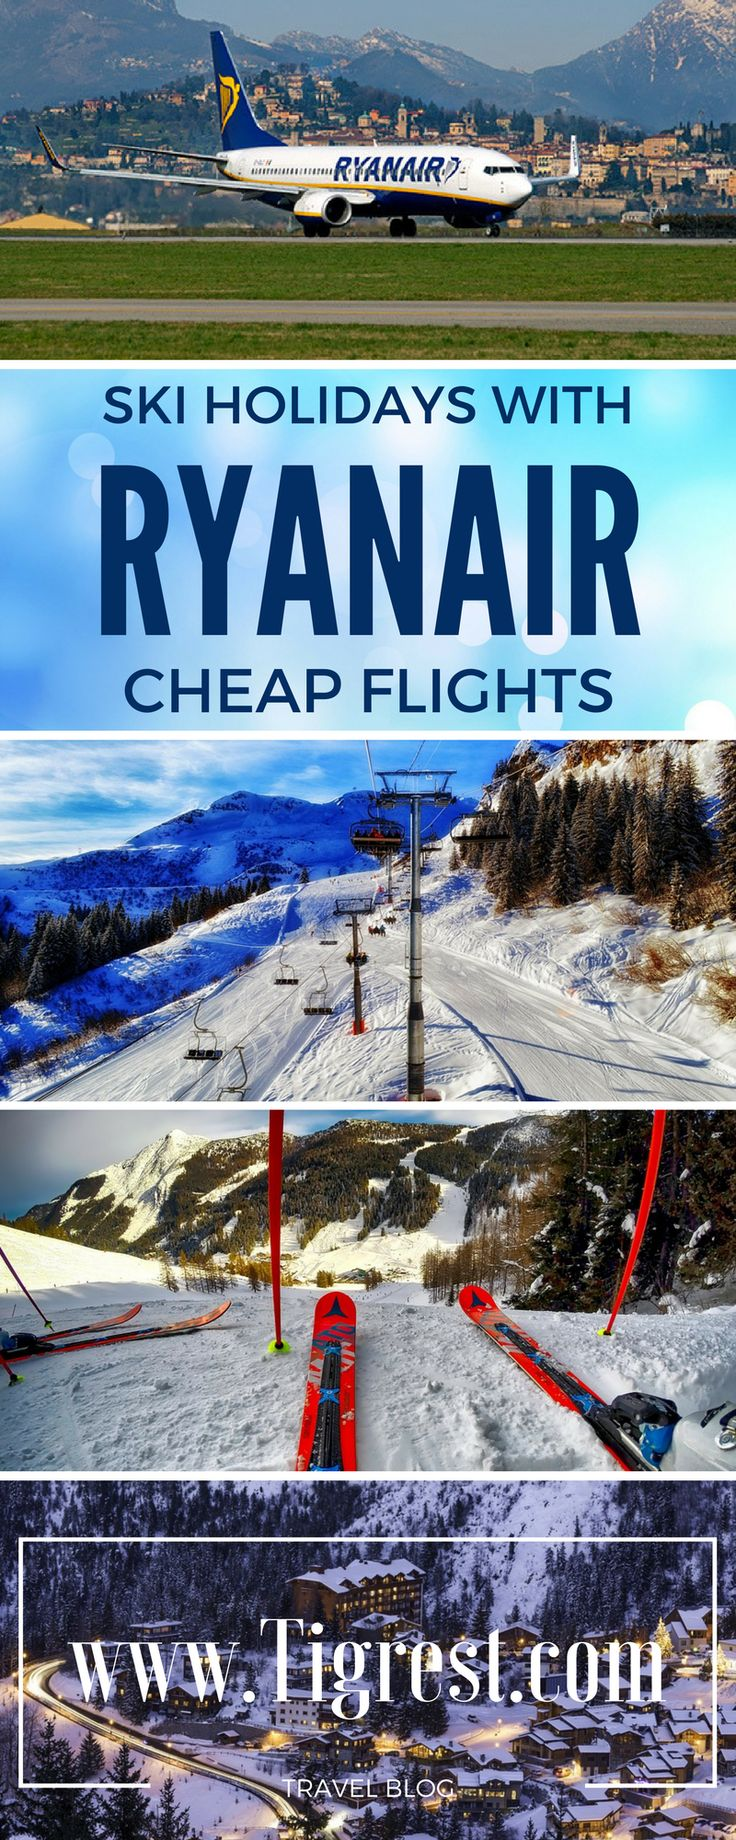 Cheap SKI holidays with Ryanair - how to plan ski holiday with low cost airline, best destinations and resorts, prices and tips